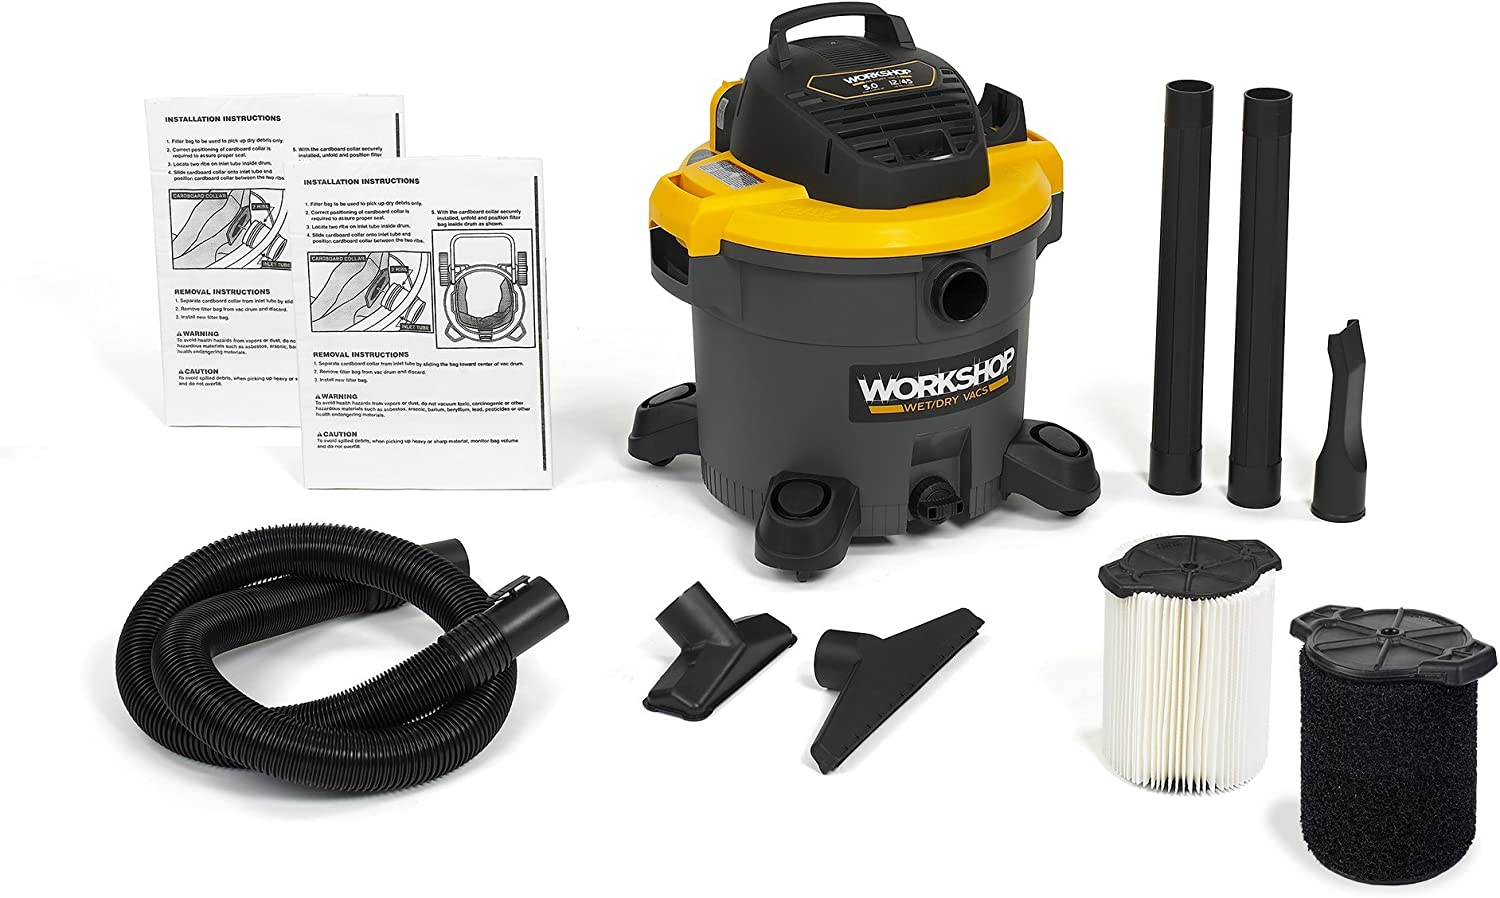 WORKSHOP Wet Dry Vac WS1200VA, 12-Gallon Shop Vacuum Cleaner, 5.0 Peak HP w/bags and filter